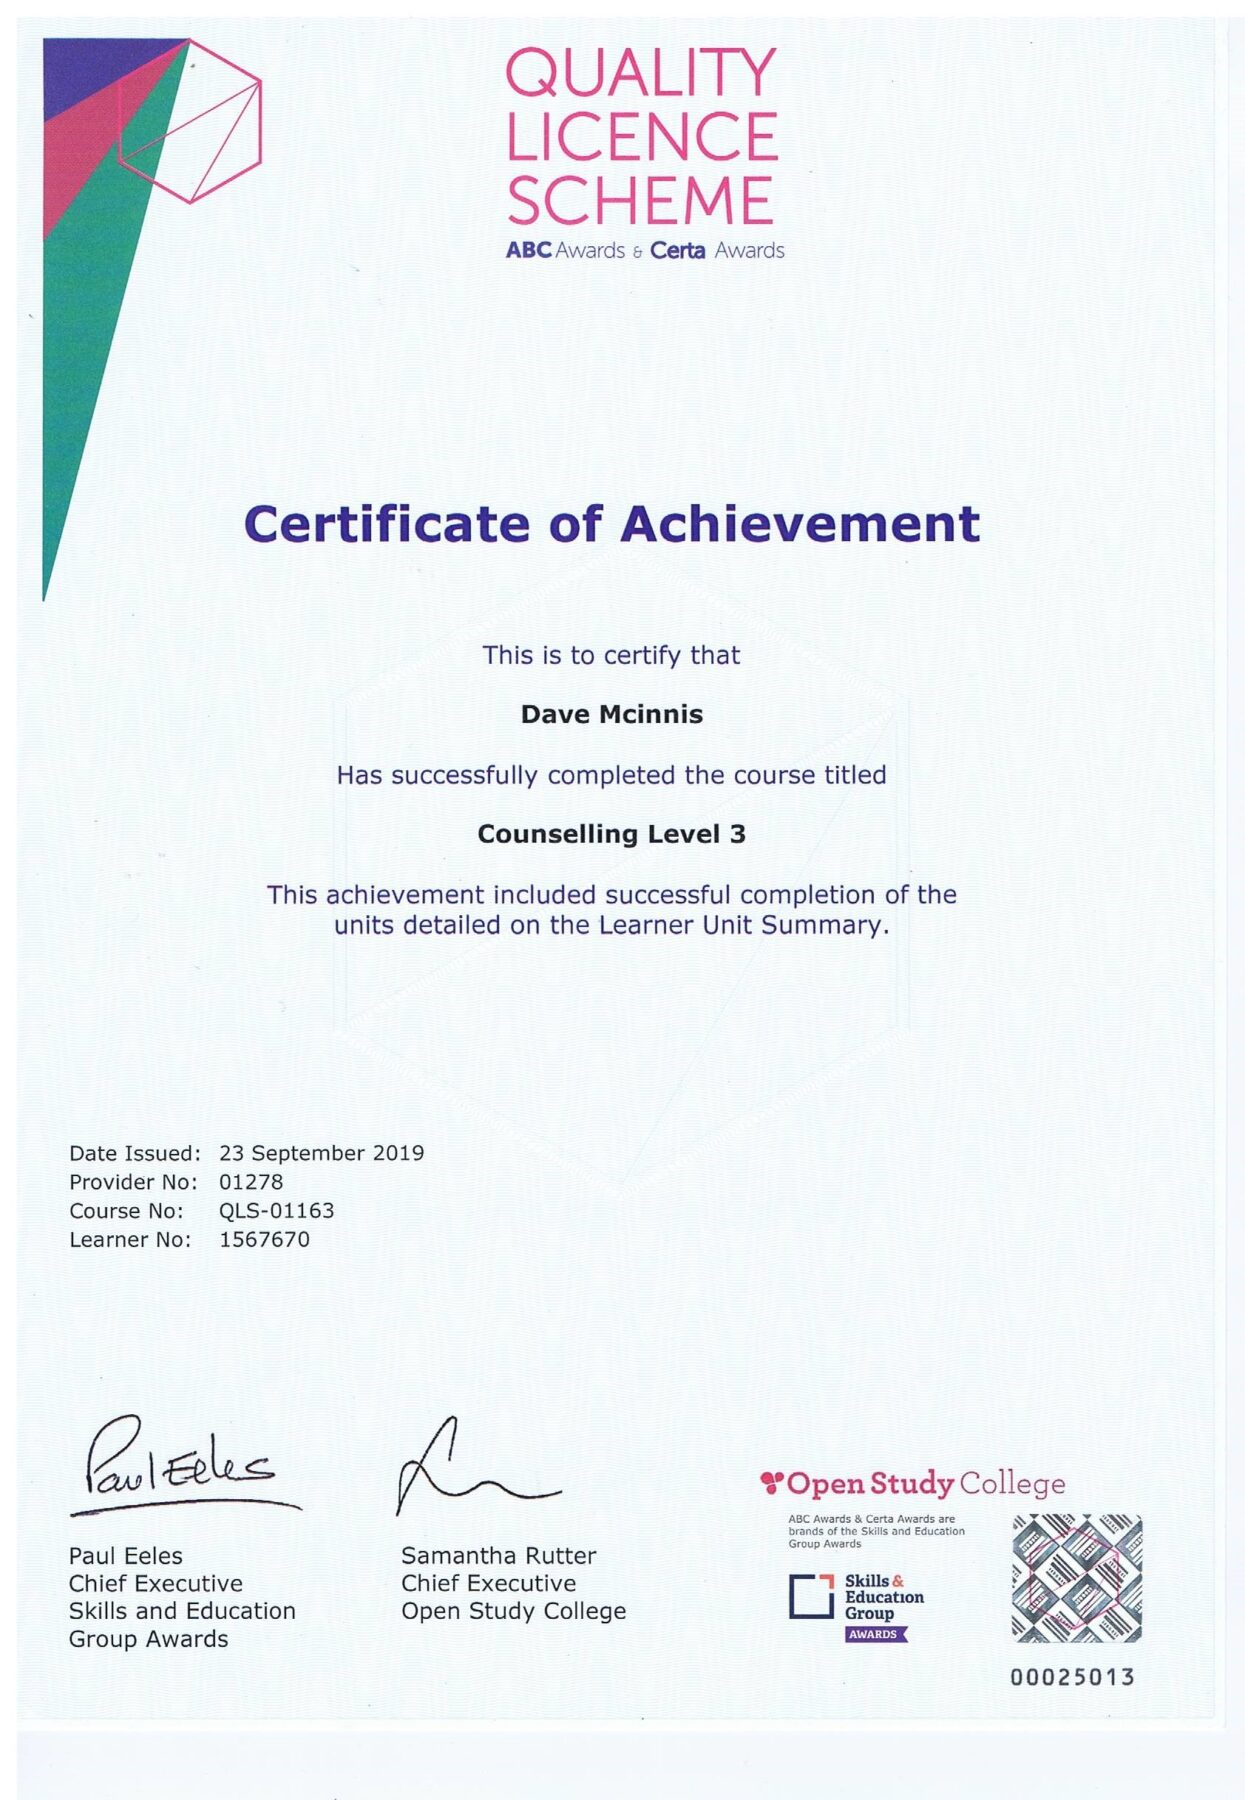 Certificate of Achievement, Counselling Level 3